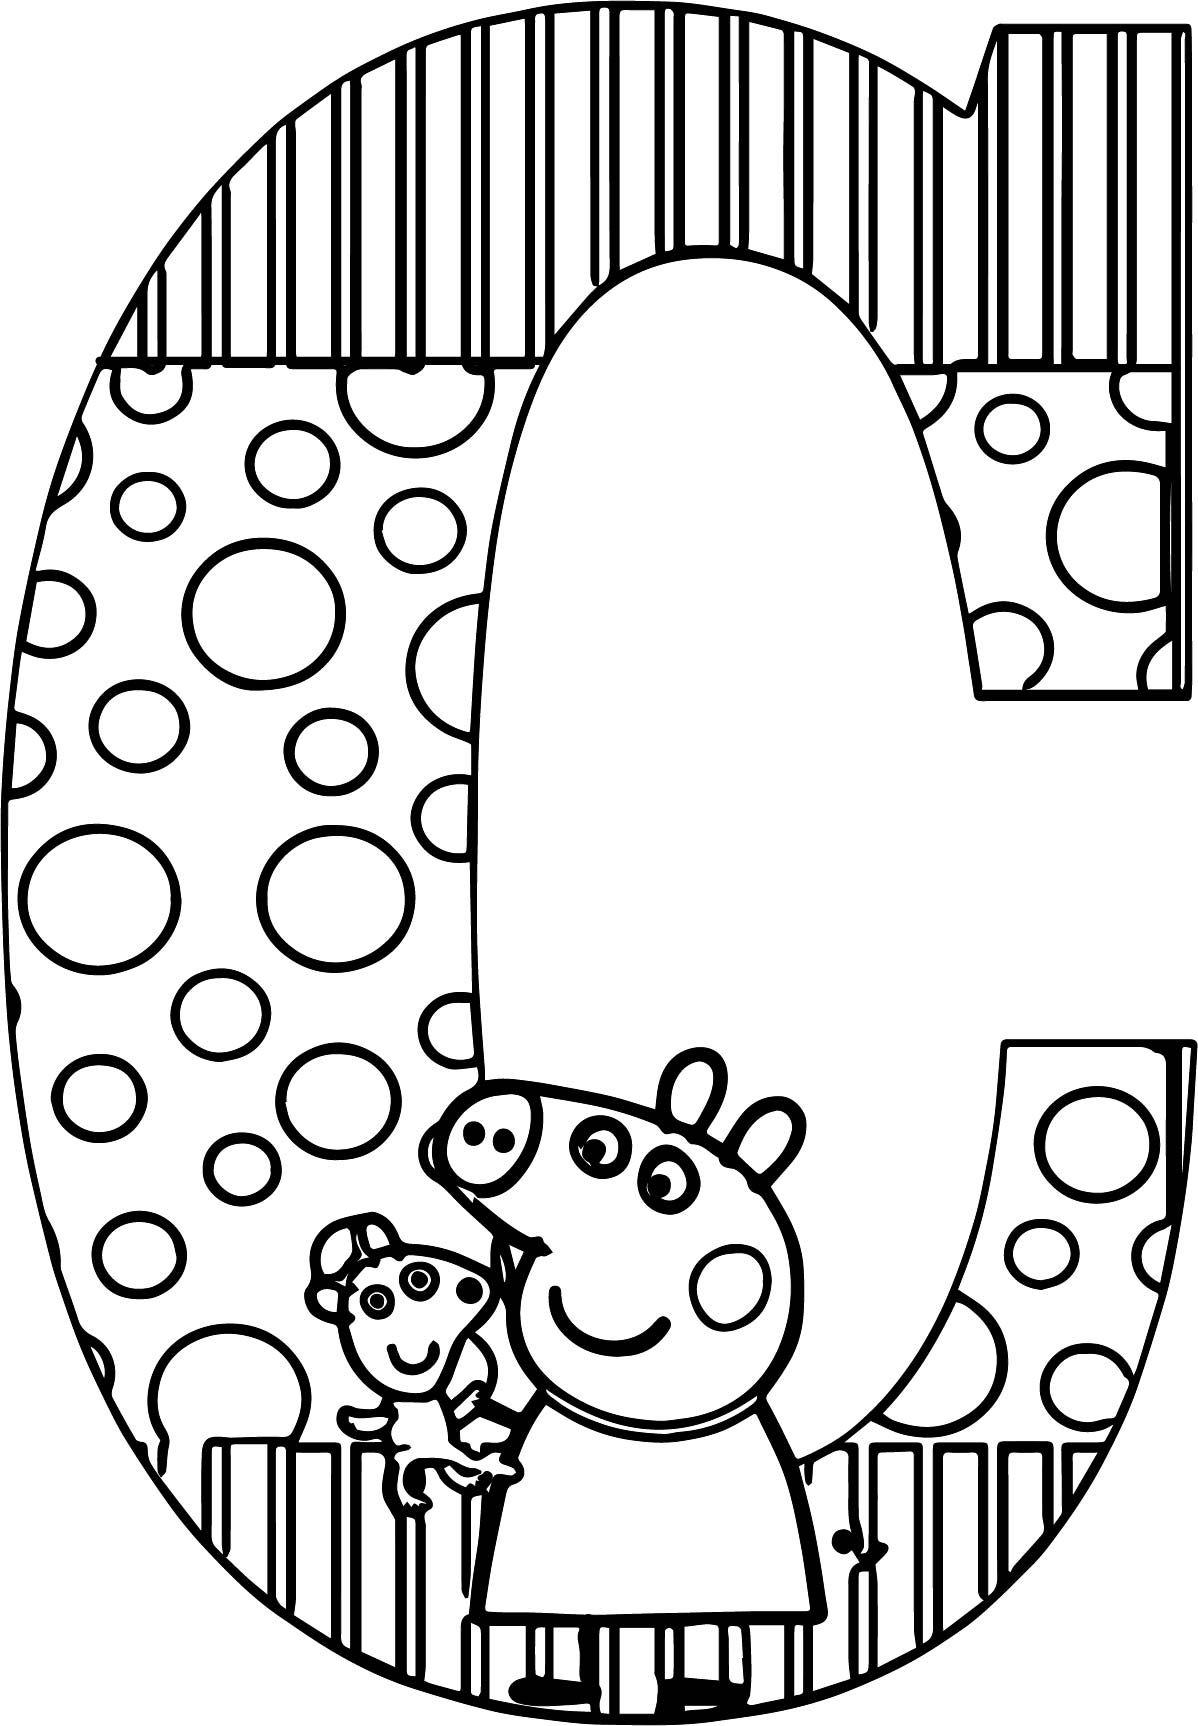 Nice Peppa Pig C Letter Coloring Page Alphabet Coloring Pages Coloring Pages Peppa Pig Coloring Pages